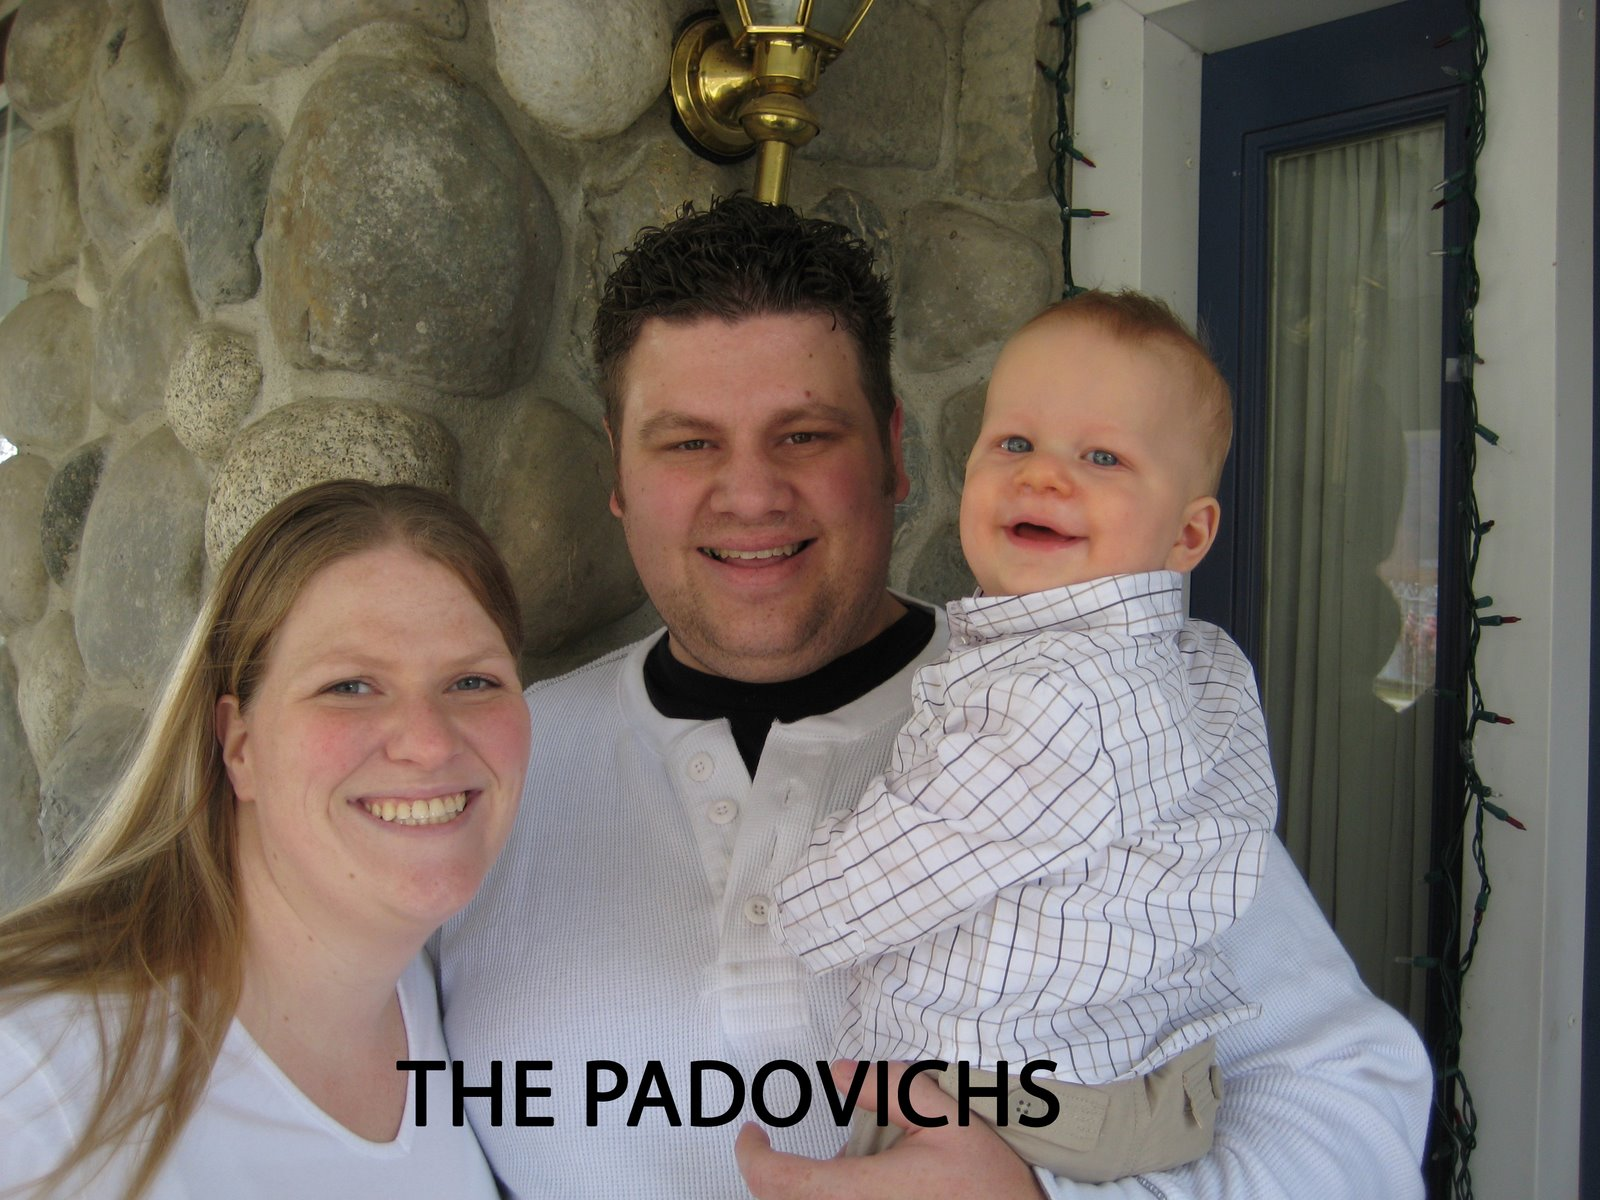 The Padovichs